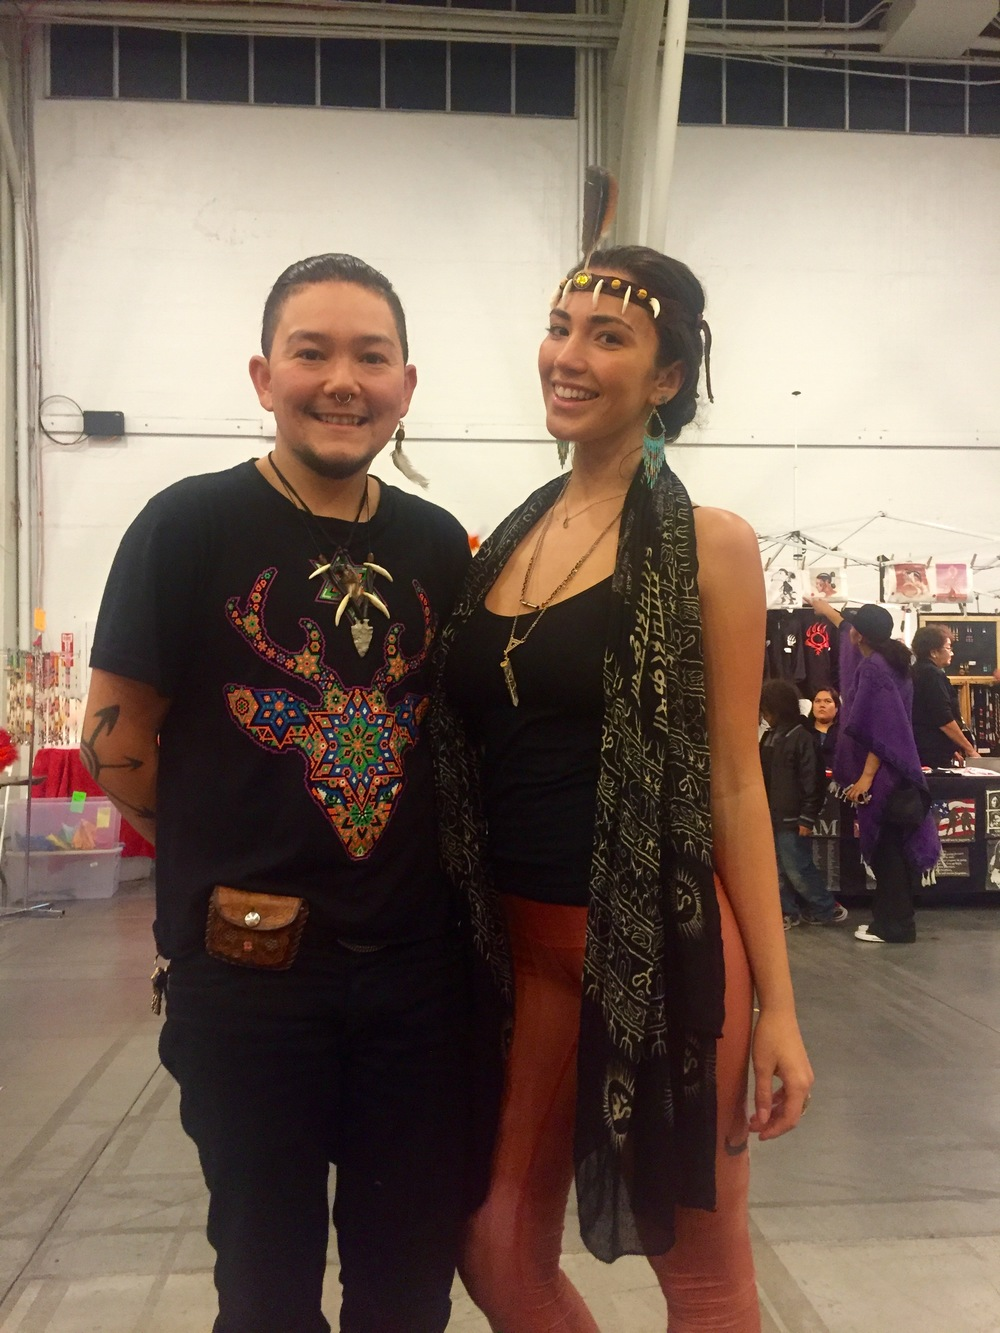 :: My big brother and I (rocking his headress/choker design) @ the Two Spirit Pow Wow at Fort Mason in San Francisco, CA ::